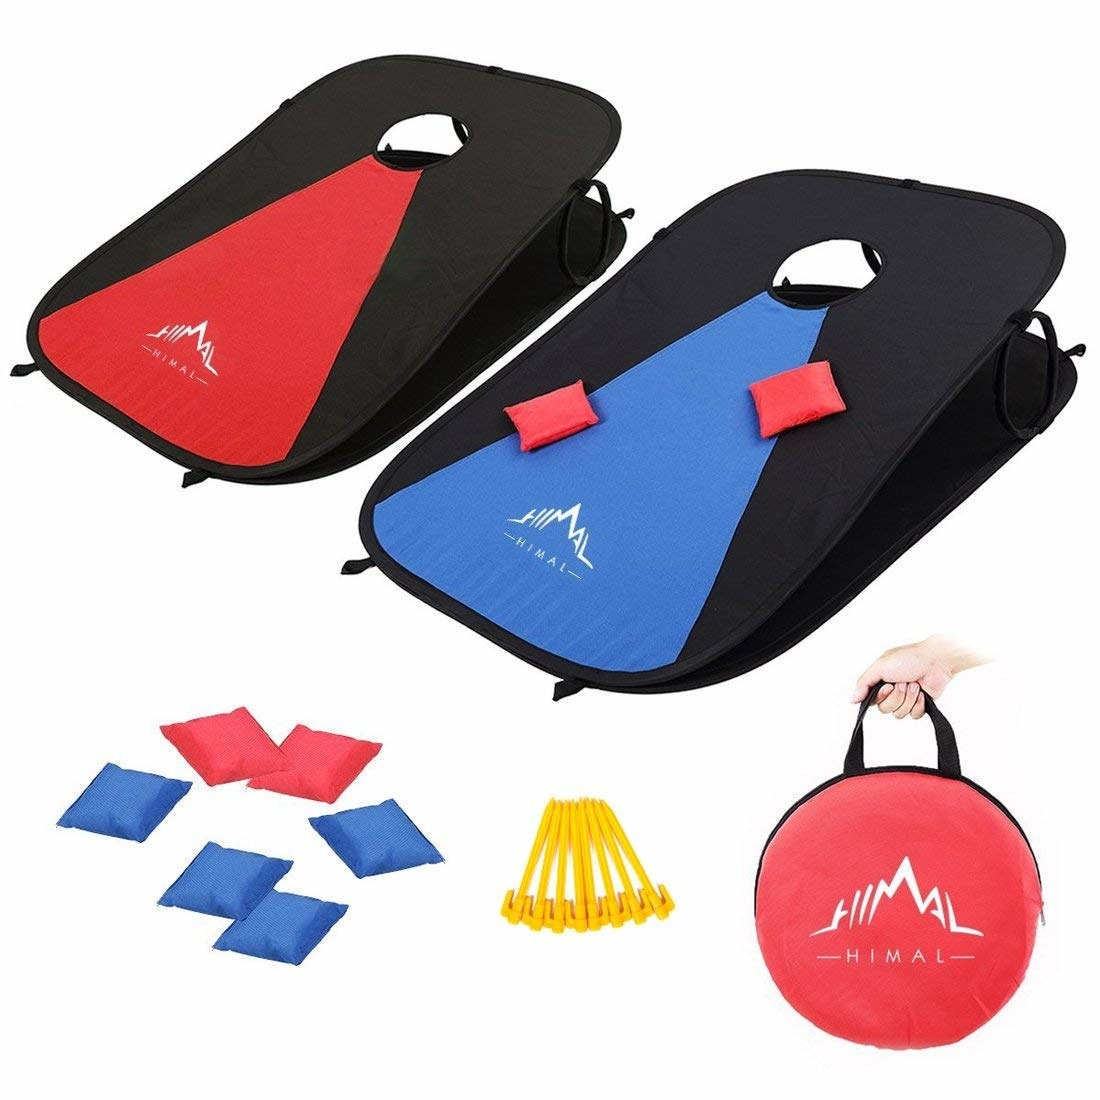 pop up corn hole in red and blue with a carrying kit